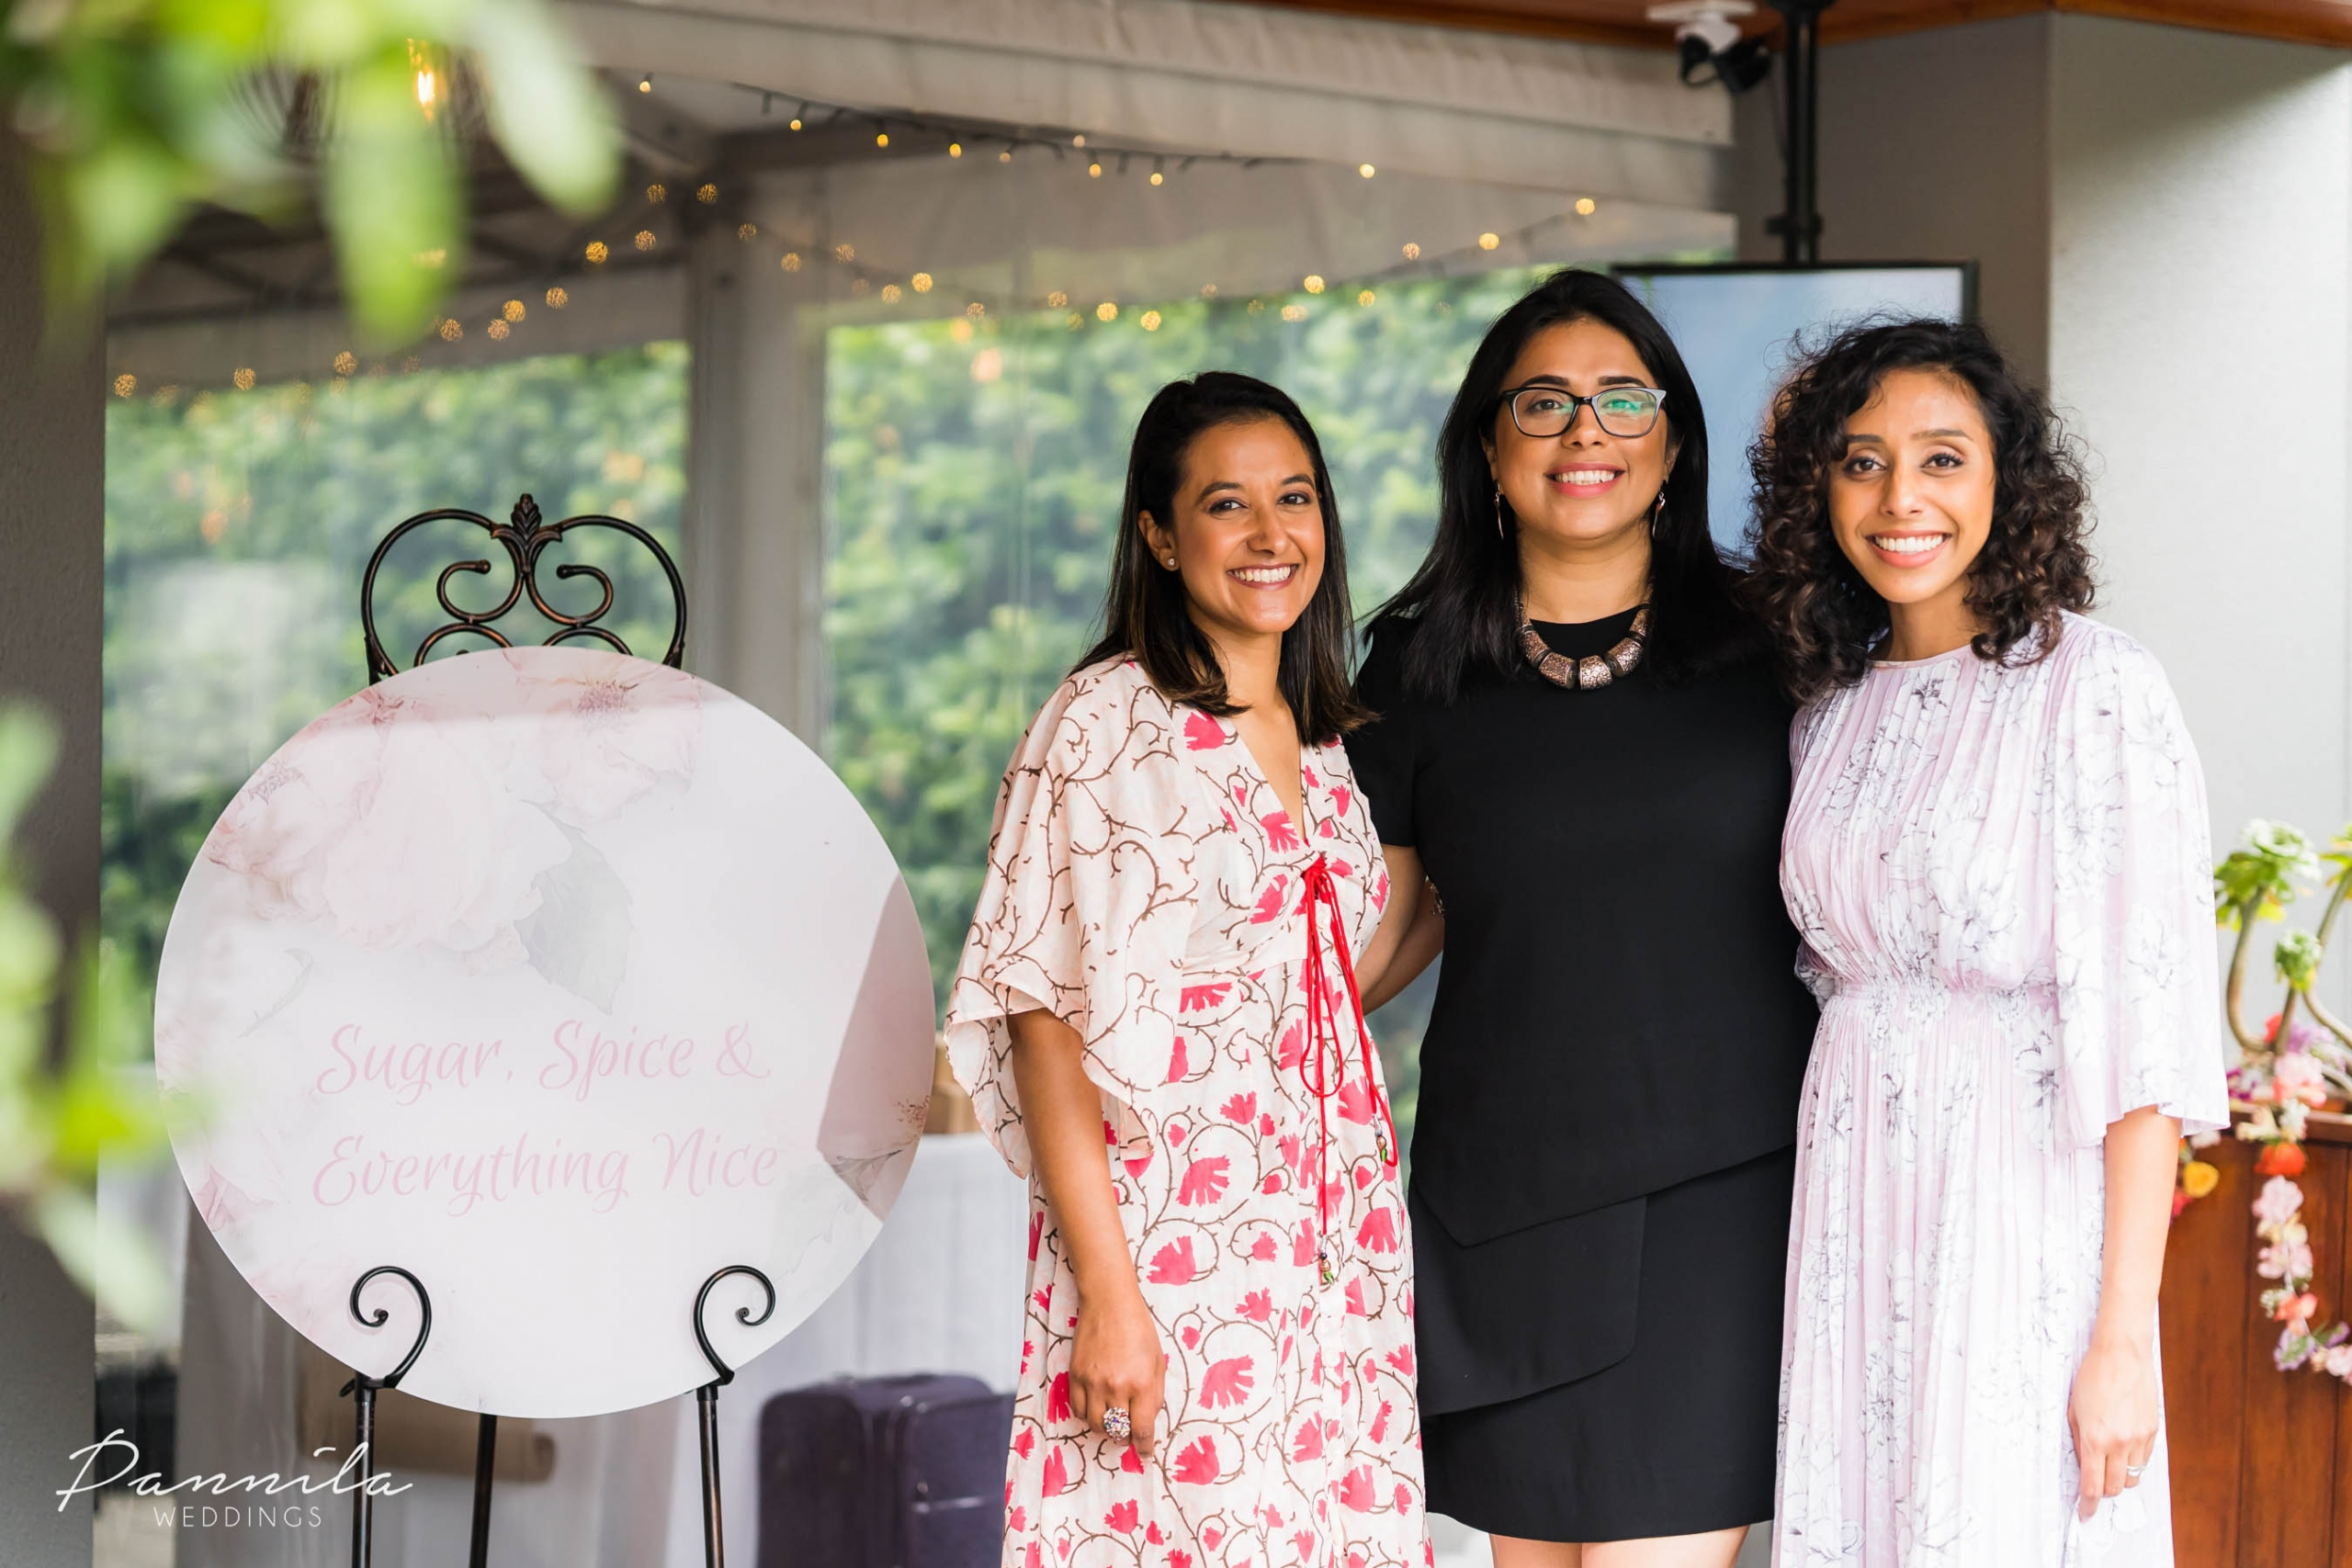 Poonam from The Maharani Diaries, Bhavna from The Modern Desi and Afra of Oh That Be Good at a Sydney event for South Asians.